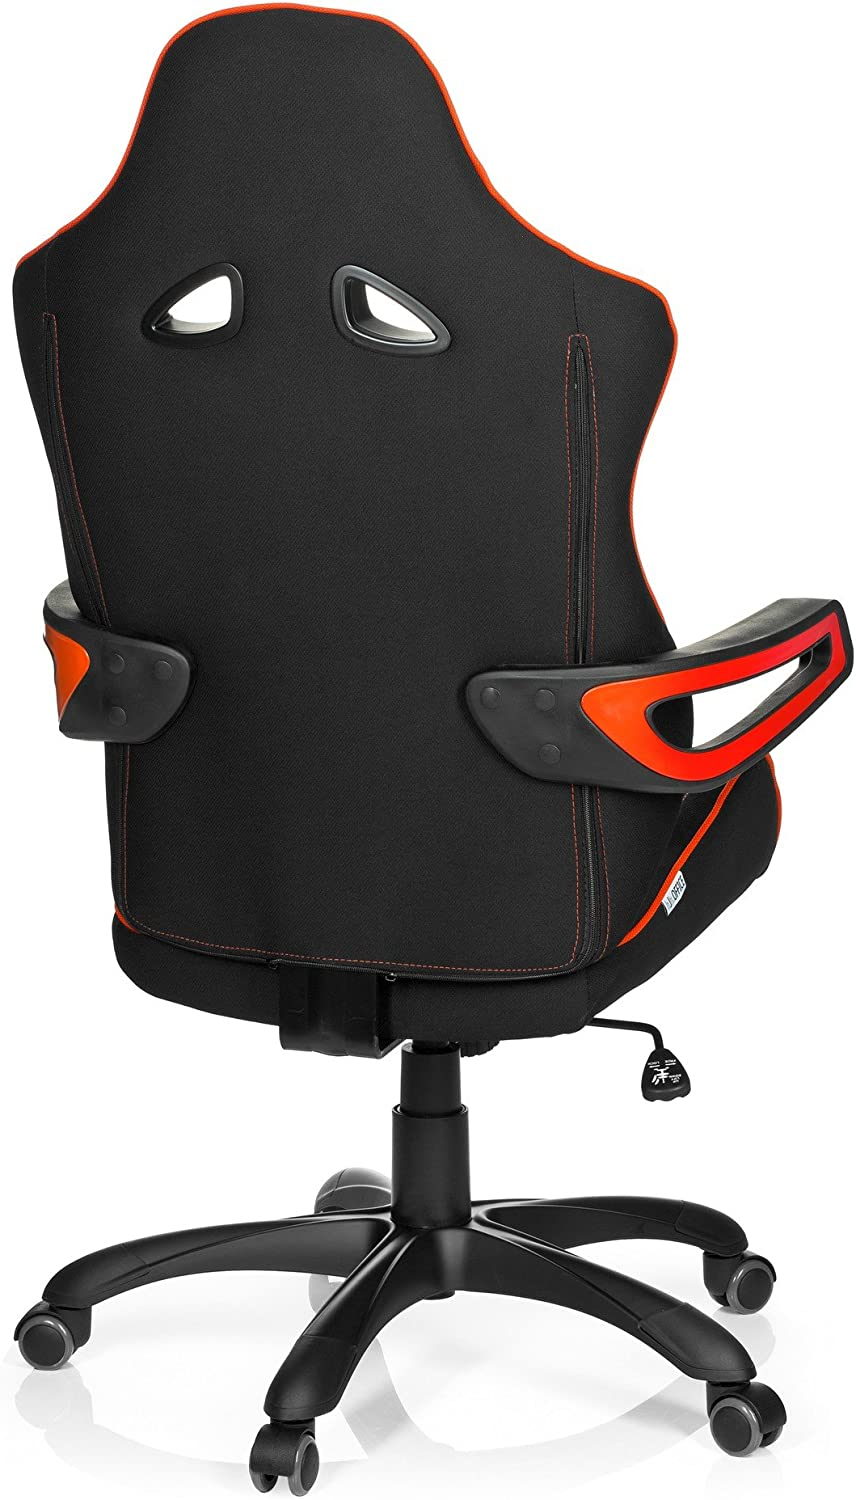 Gaming Chair/Office Chair RAYCER PRO II Fabric, Black/Red hjh OFFICE Black/Red